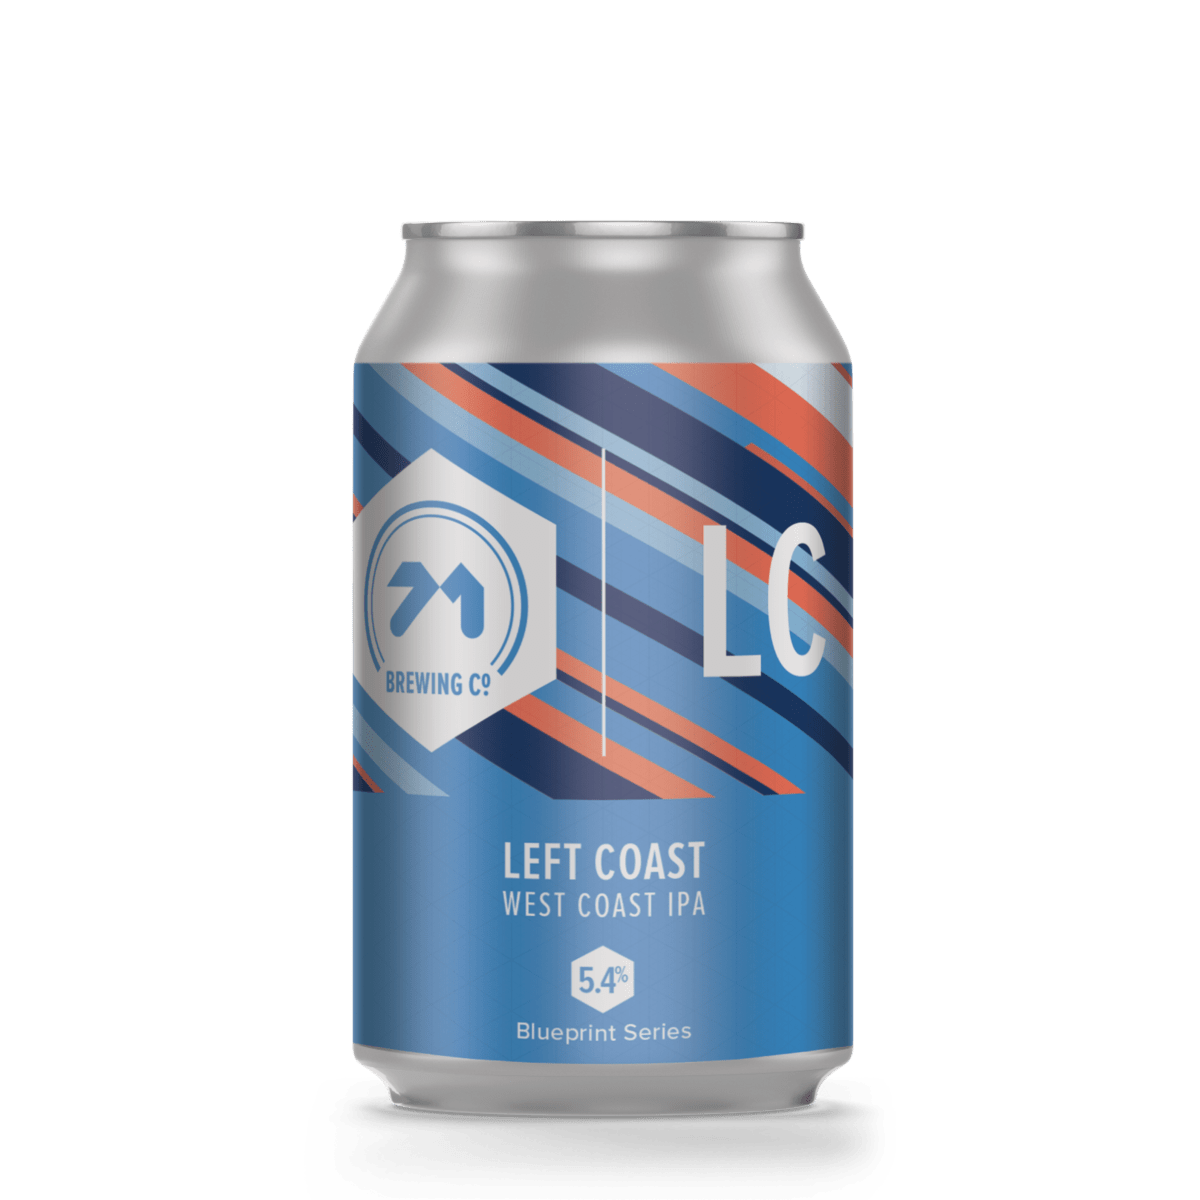 71 Brewing: Left Coast